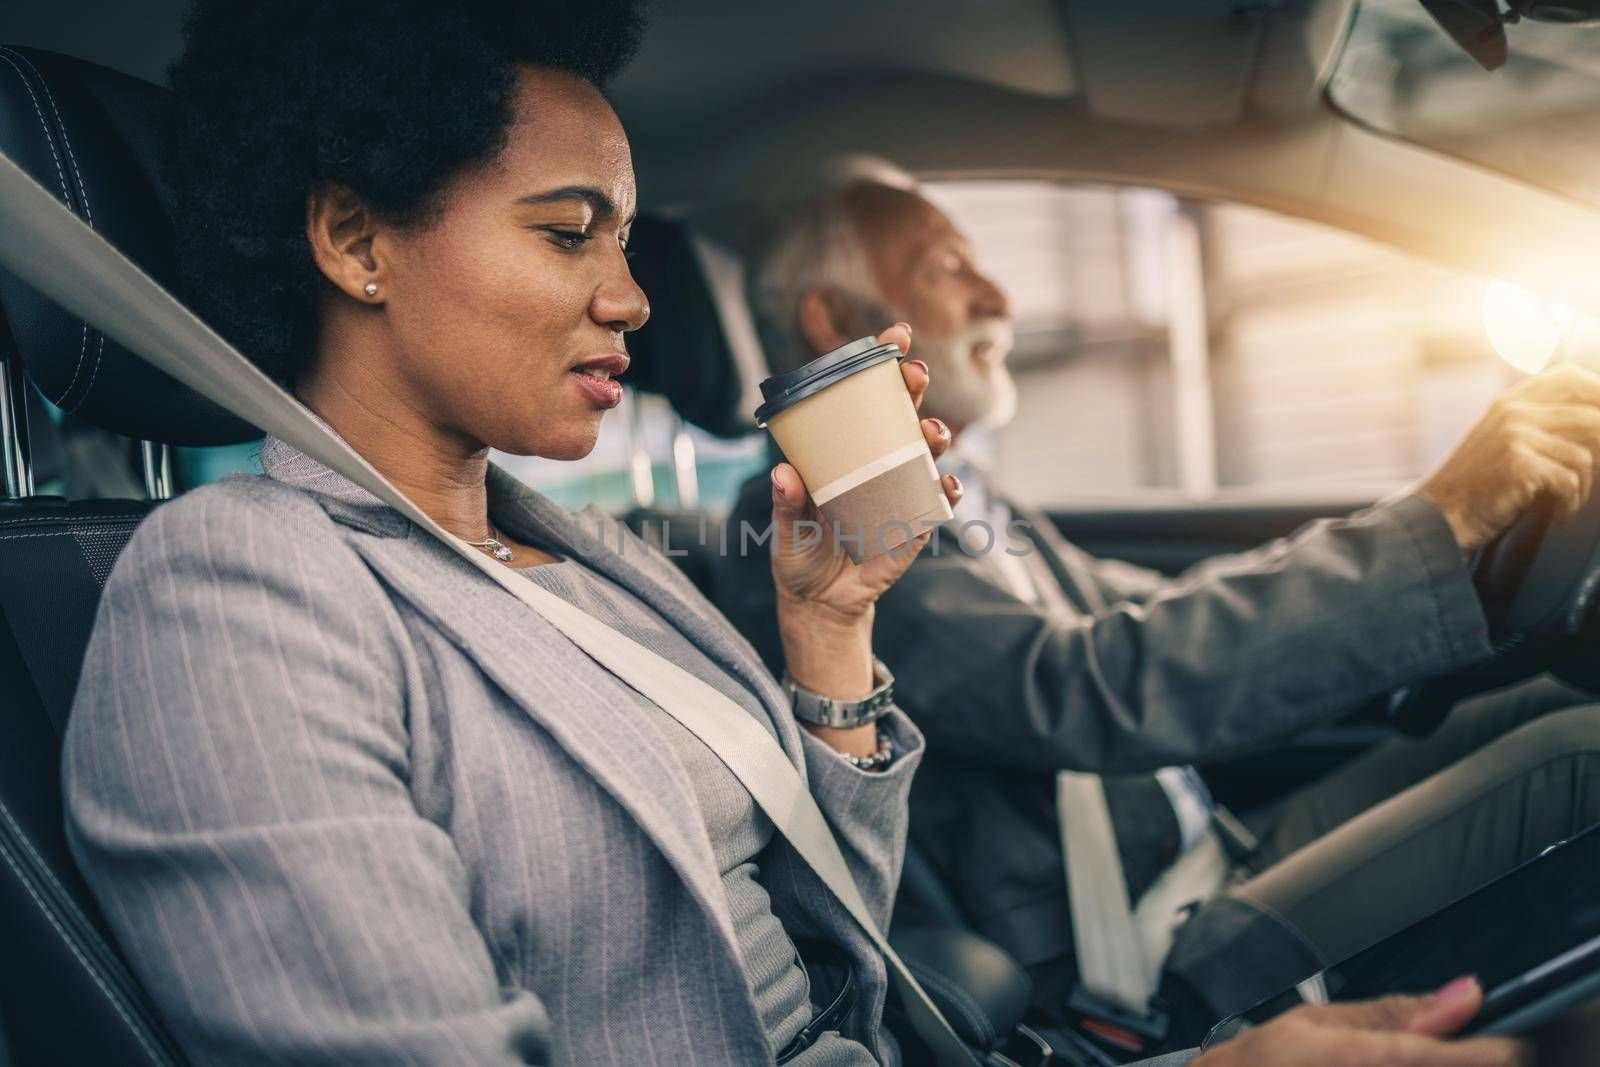 Shot of a successful black business woman drinking coffee to go and using digital tablet during her morning commute.